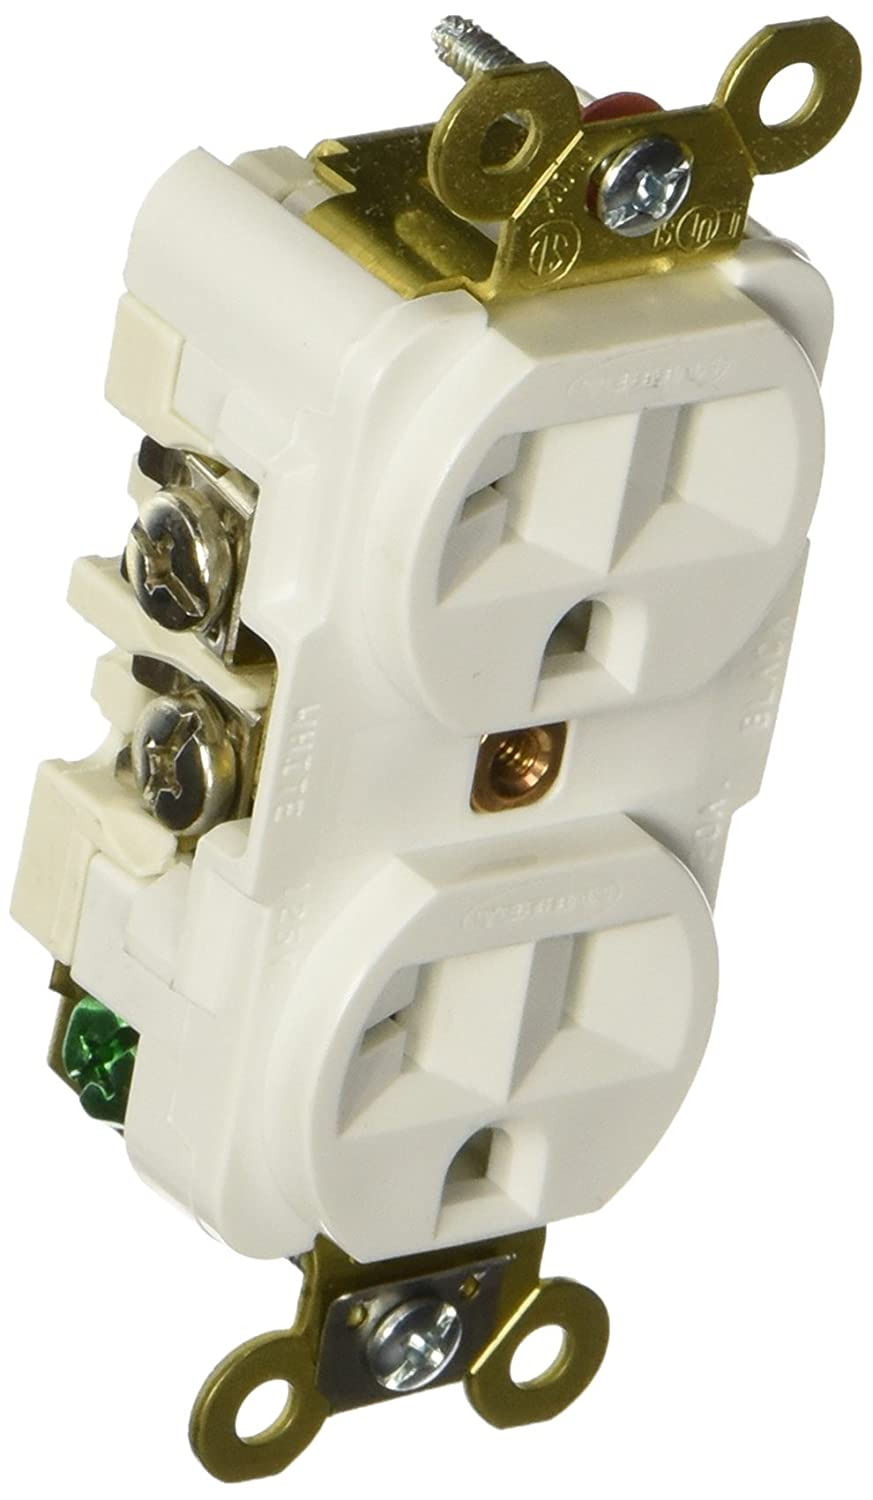 Hubbell HBL8300HW Hospital Grade Receptacle Outlet 20A 125V 5-20R White